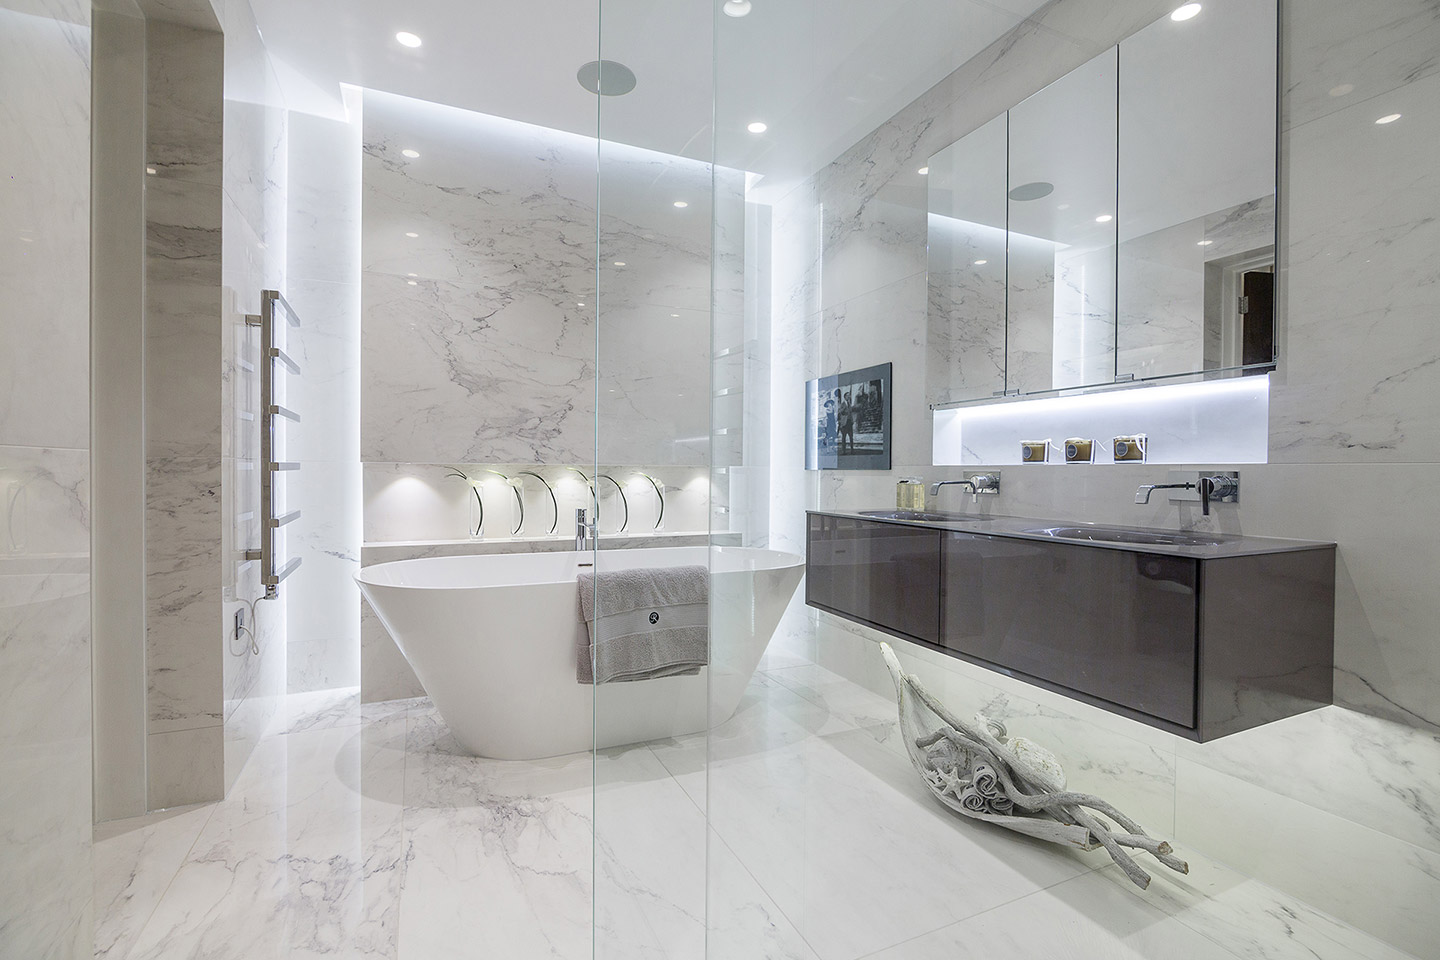 Luxury Bathroom - Master Ensuite : Hadley Wood, London